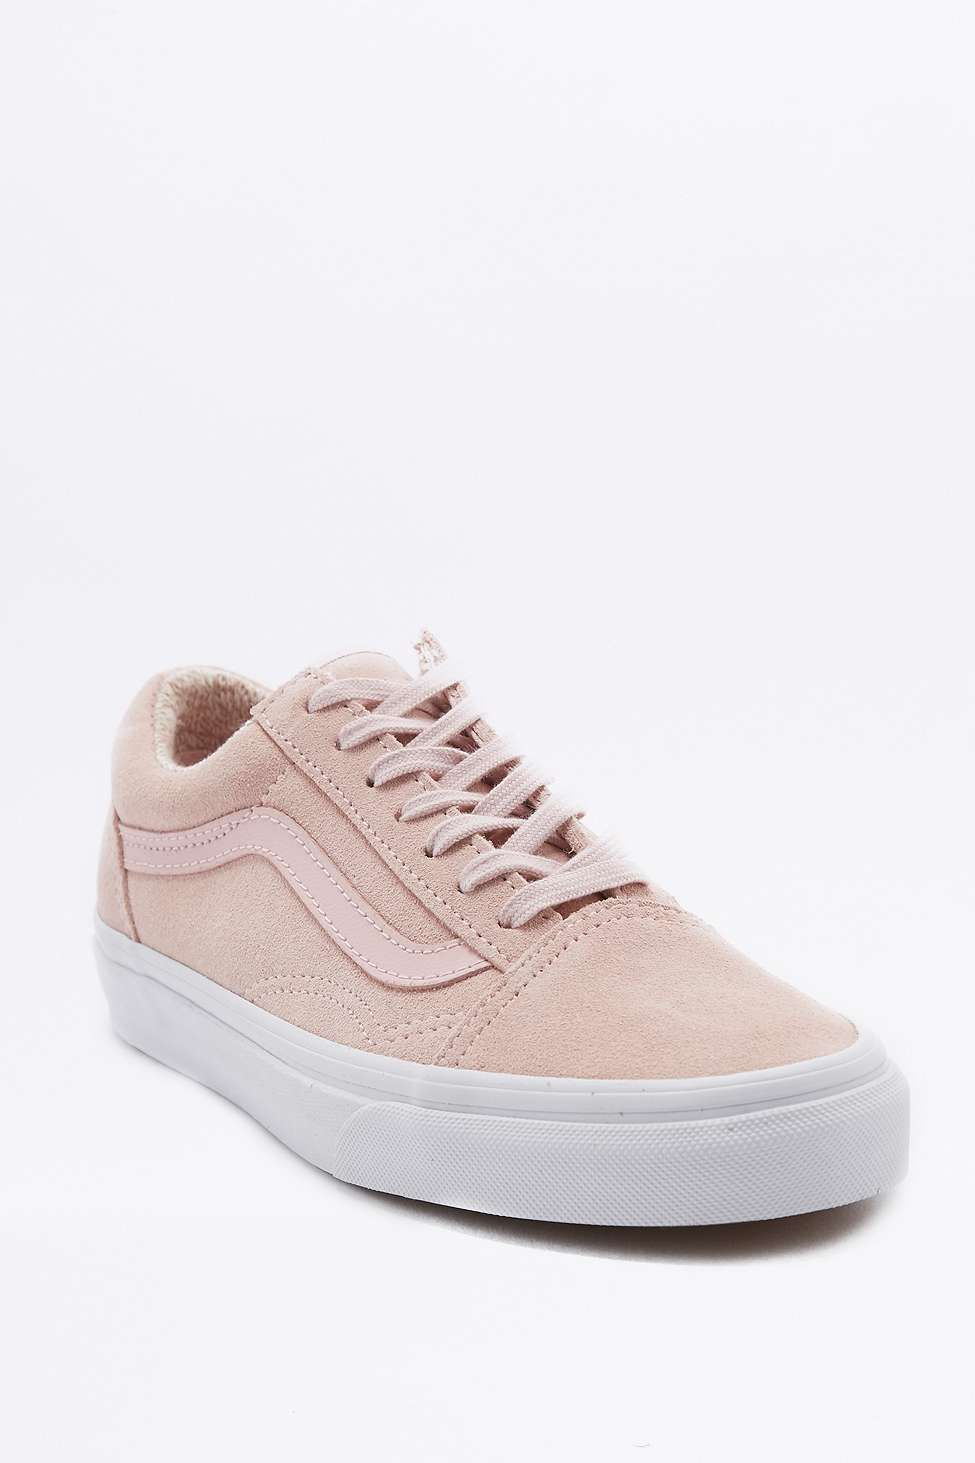 Vans - Baskets Old Skool en daim roses | Chaussures et ...